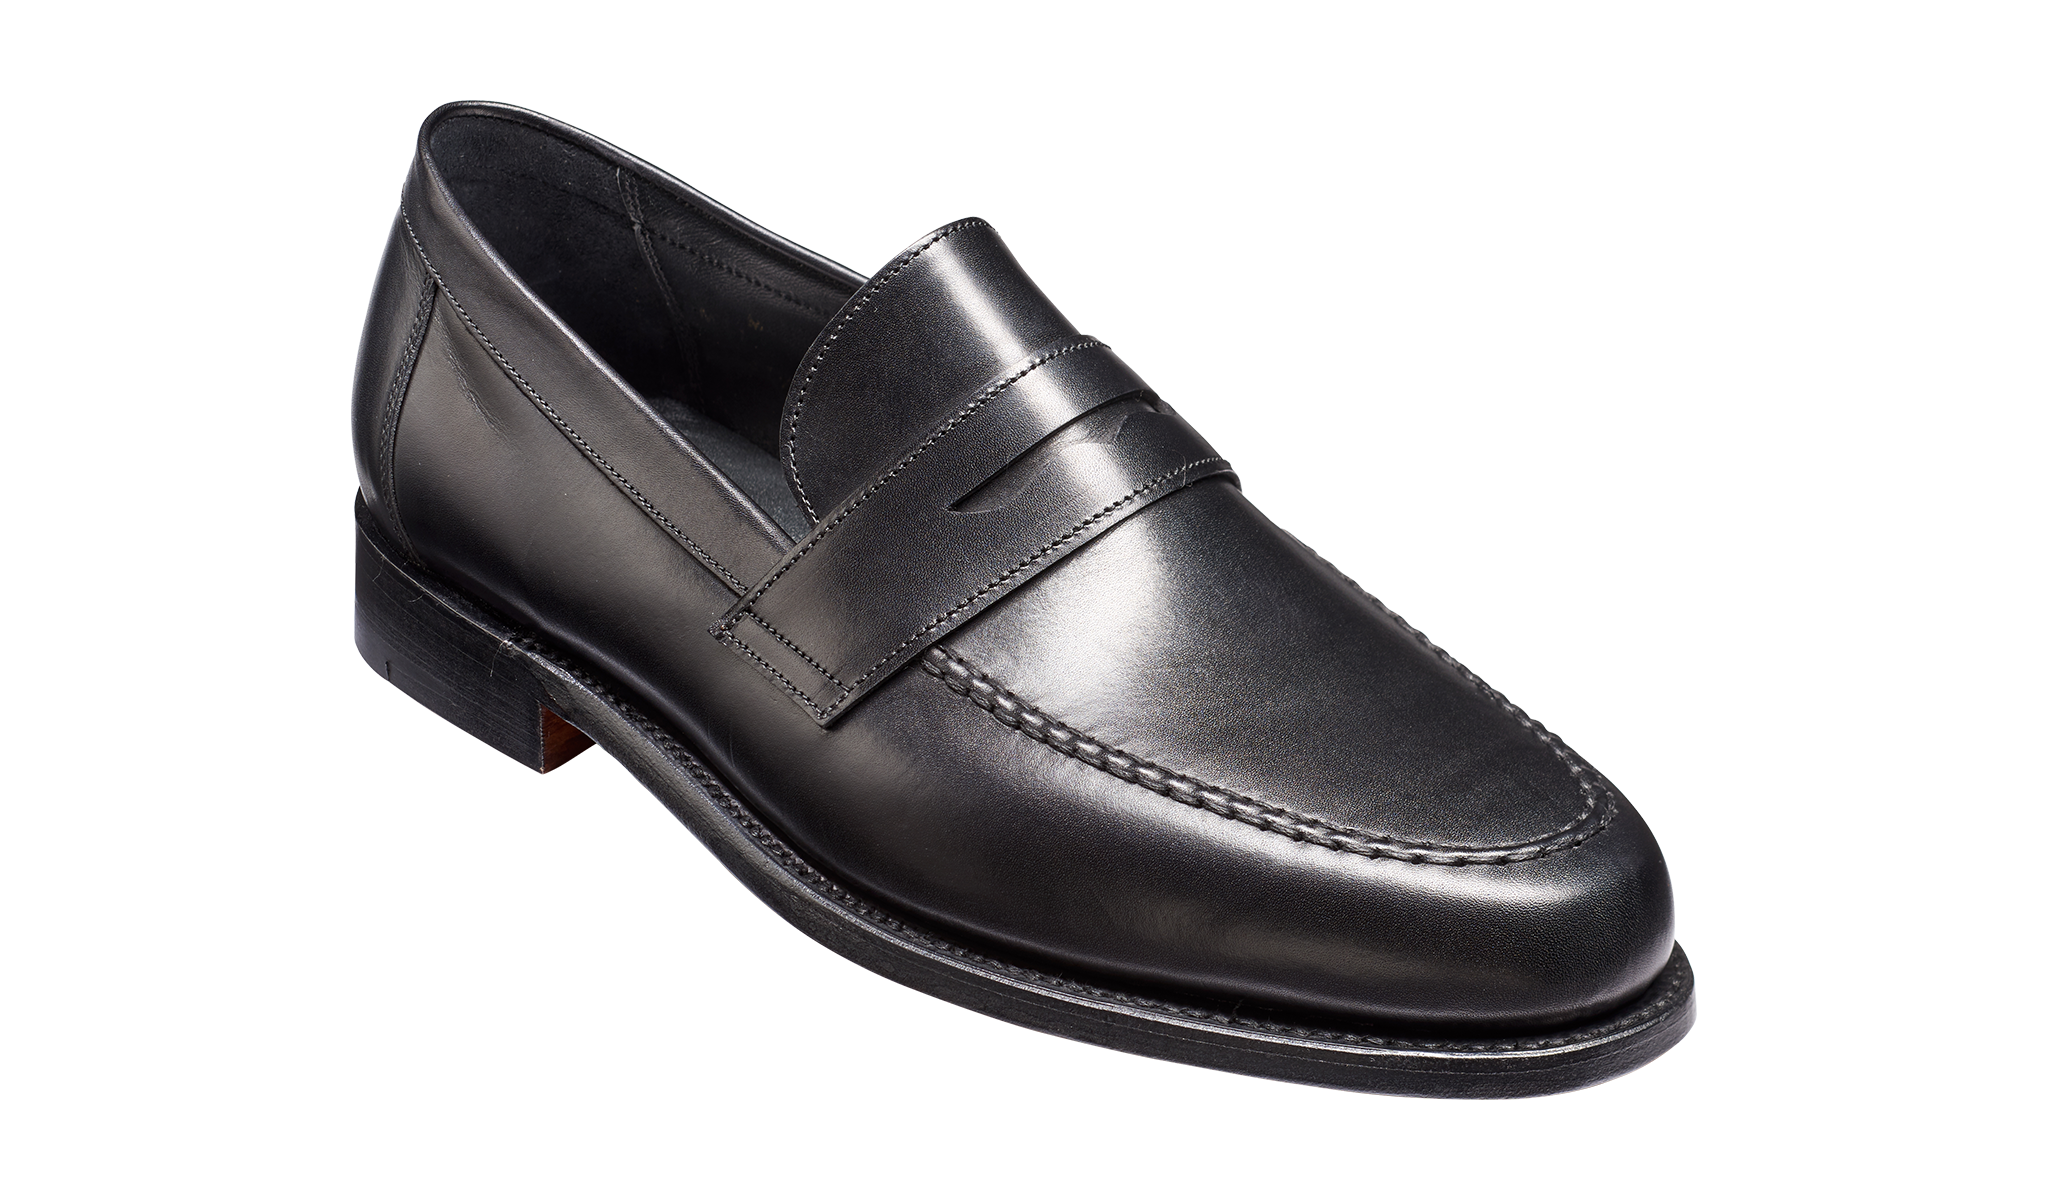 Jevington - A men's black handmade leather loafers by Barker Shoes.